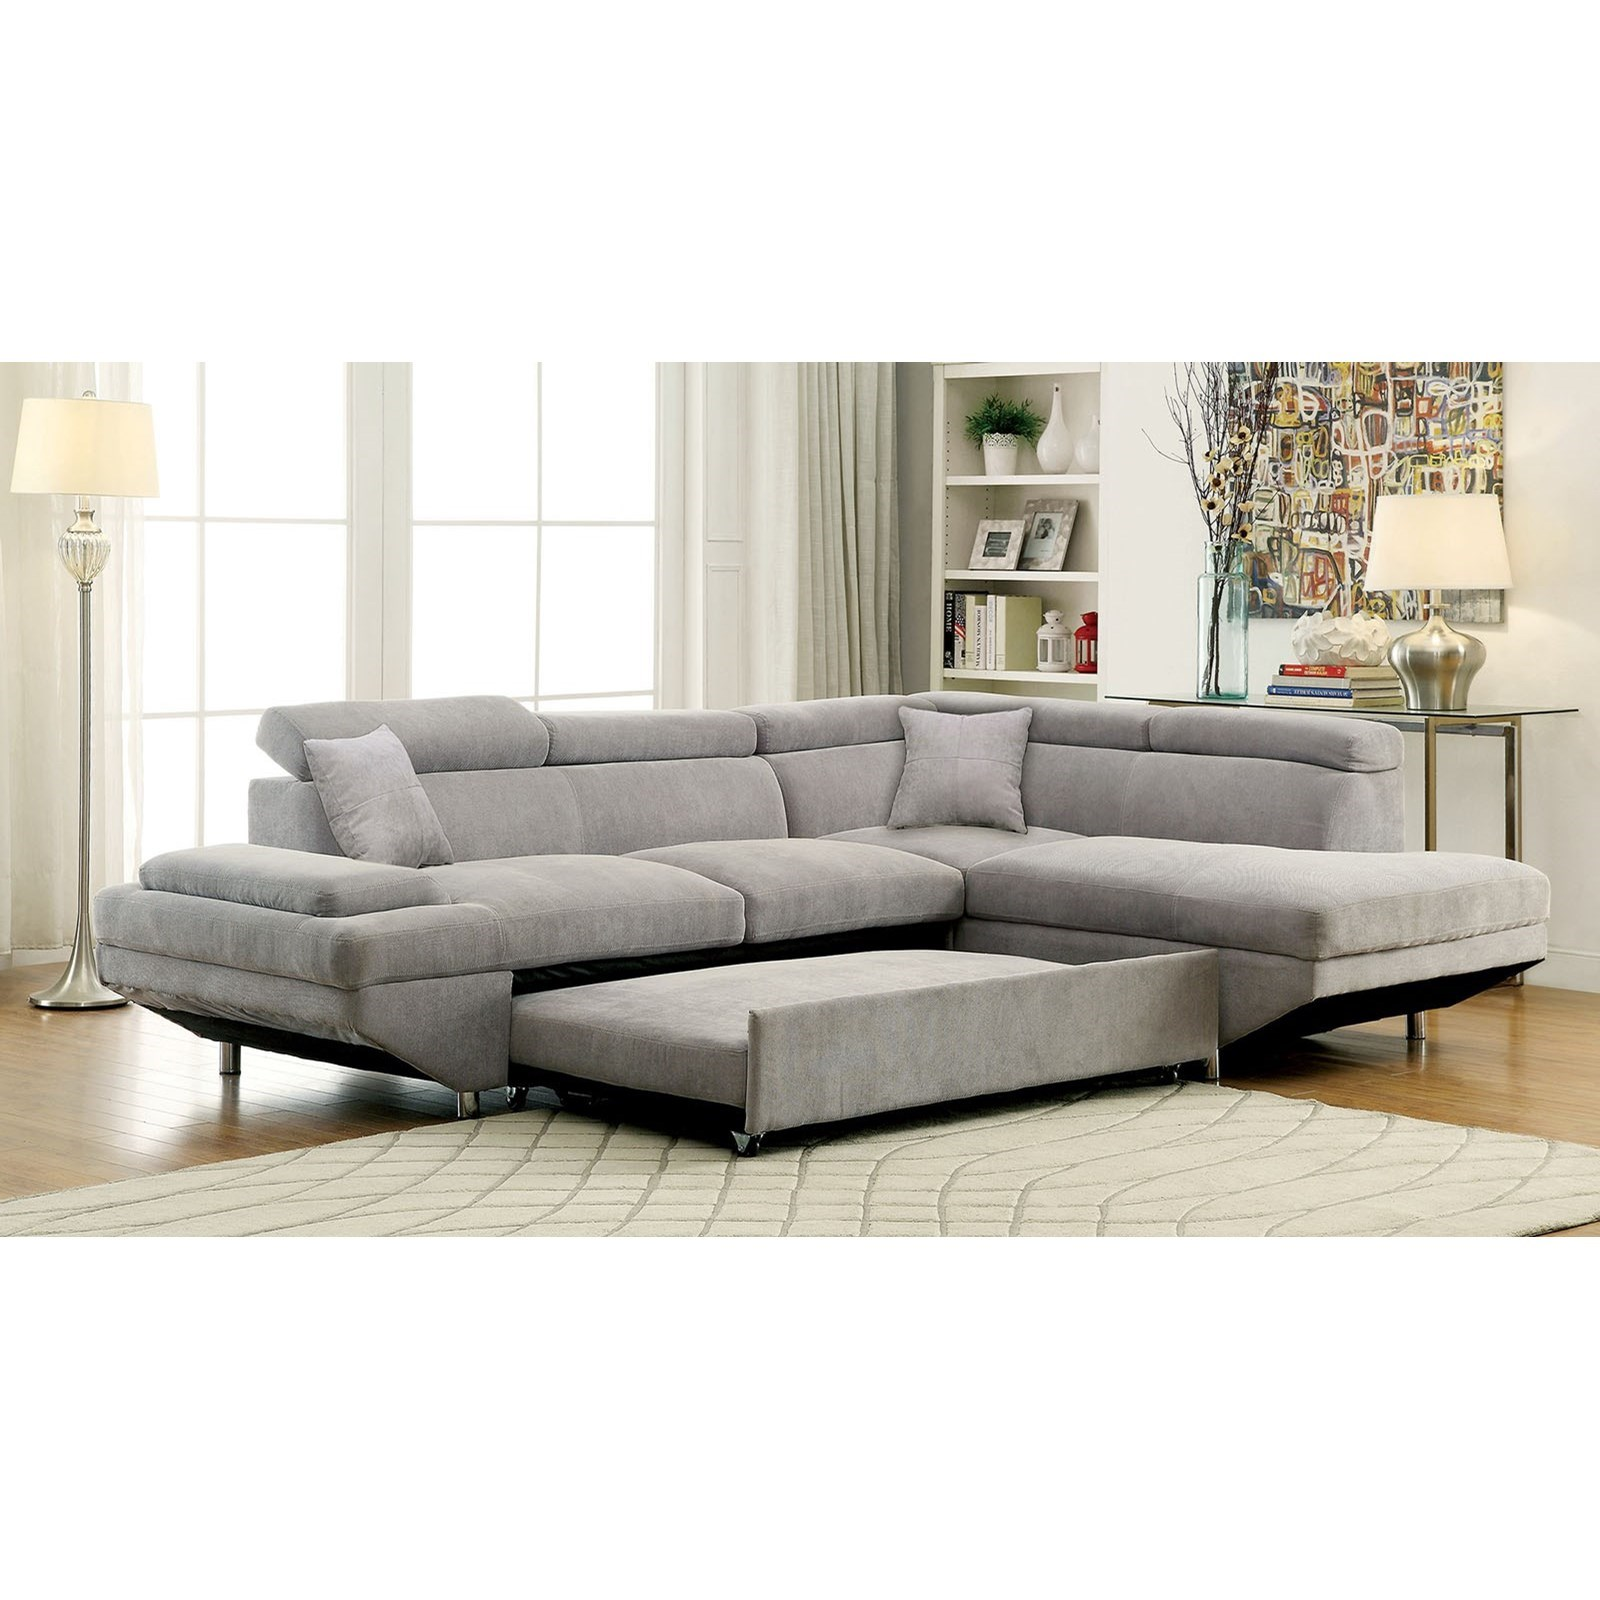 Furniture Of America Foreman Contemporary Sectional With